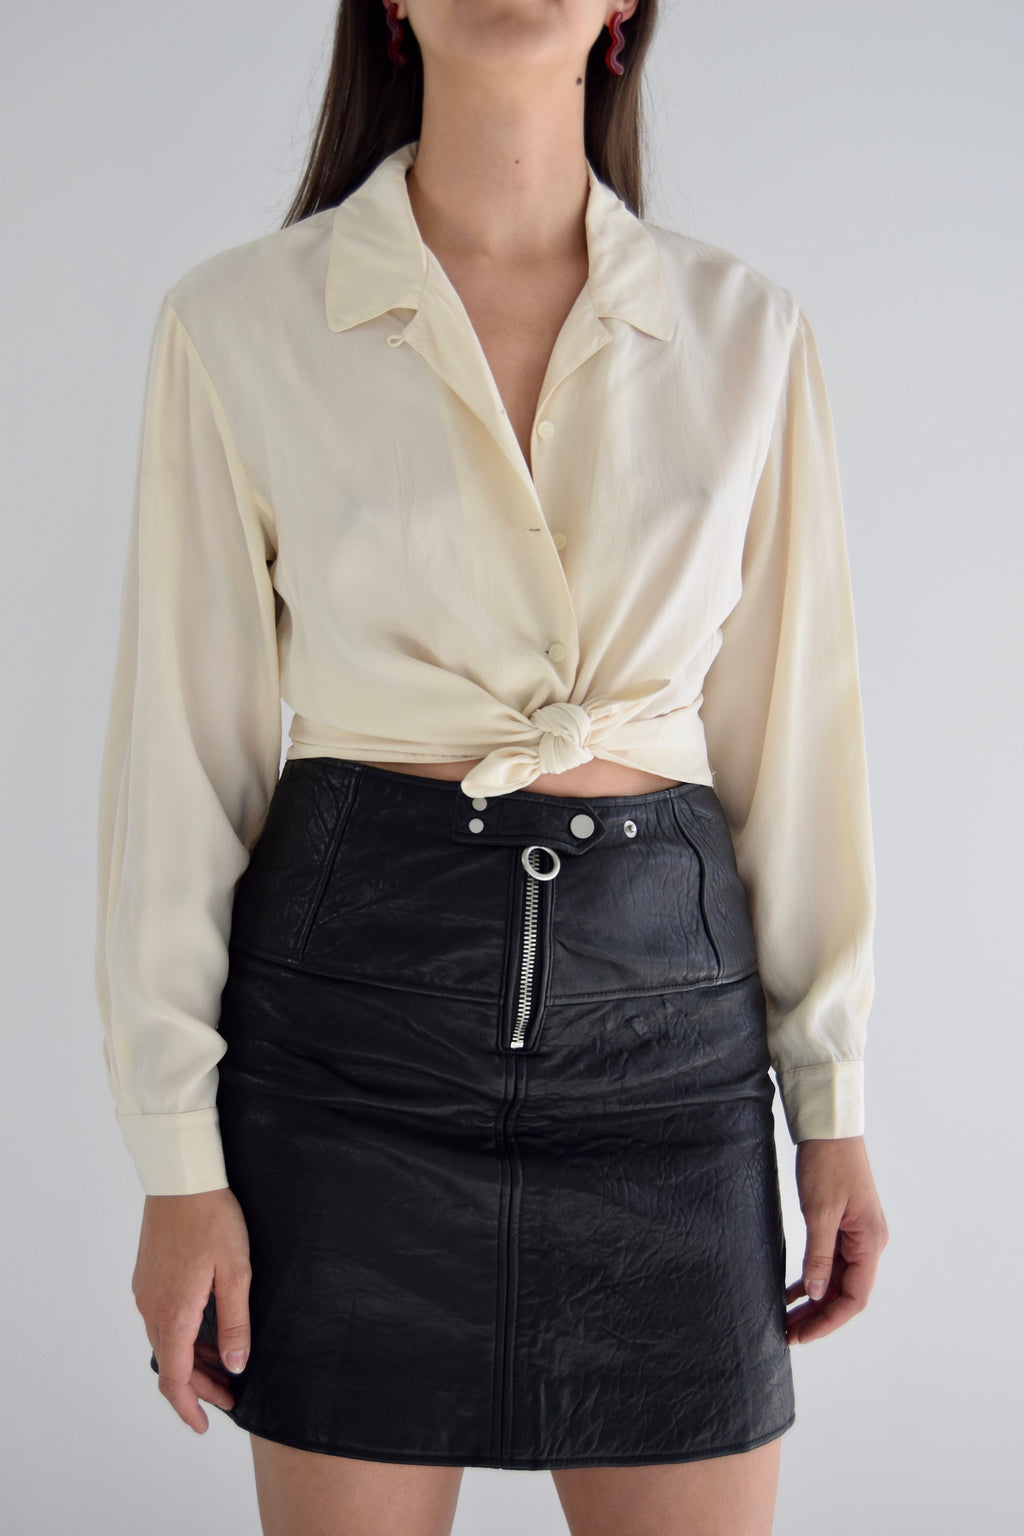 Silk Bone Top FREE SHIPPING